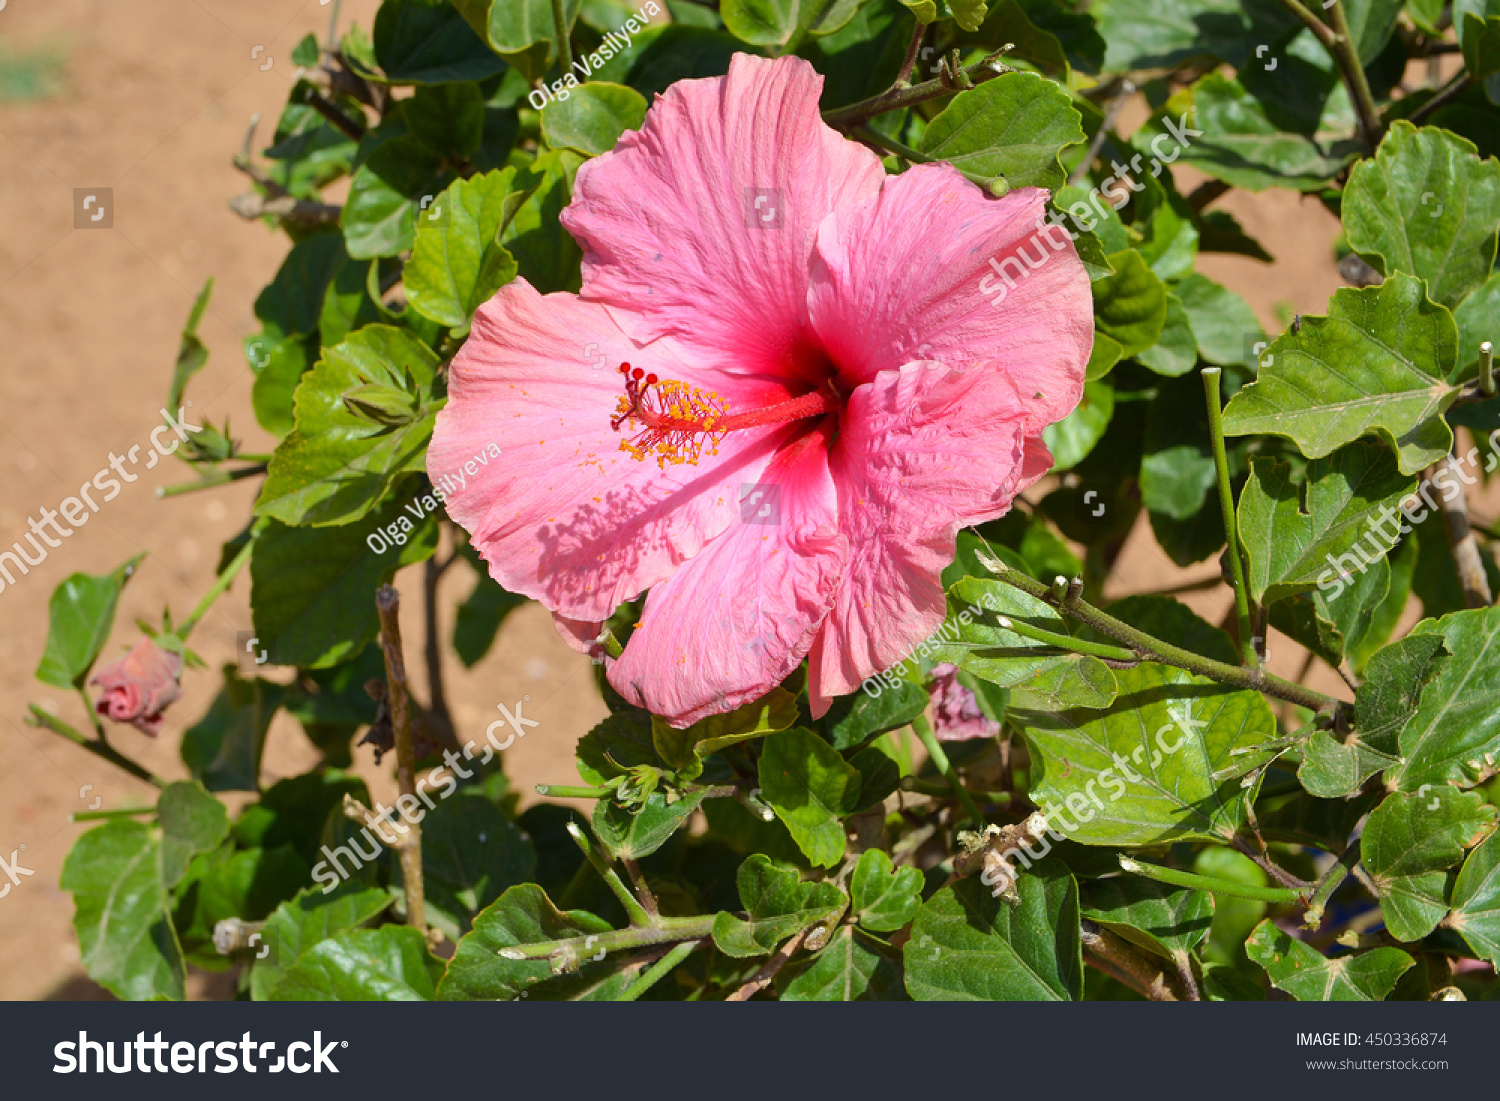 Large pink hibiscus flowers stock photo royalty free 450336874 large pink hibiscus flowers izmirmasajfo Choice Image